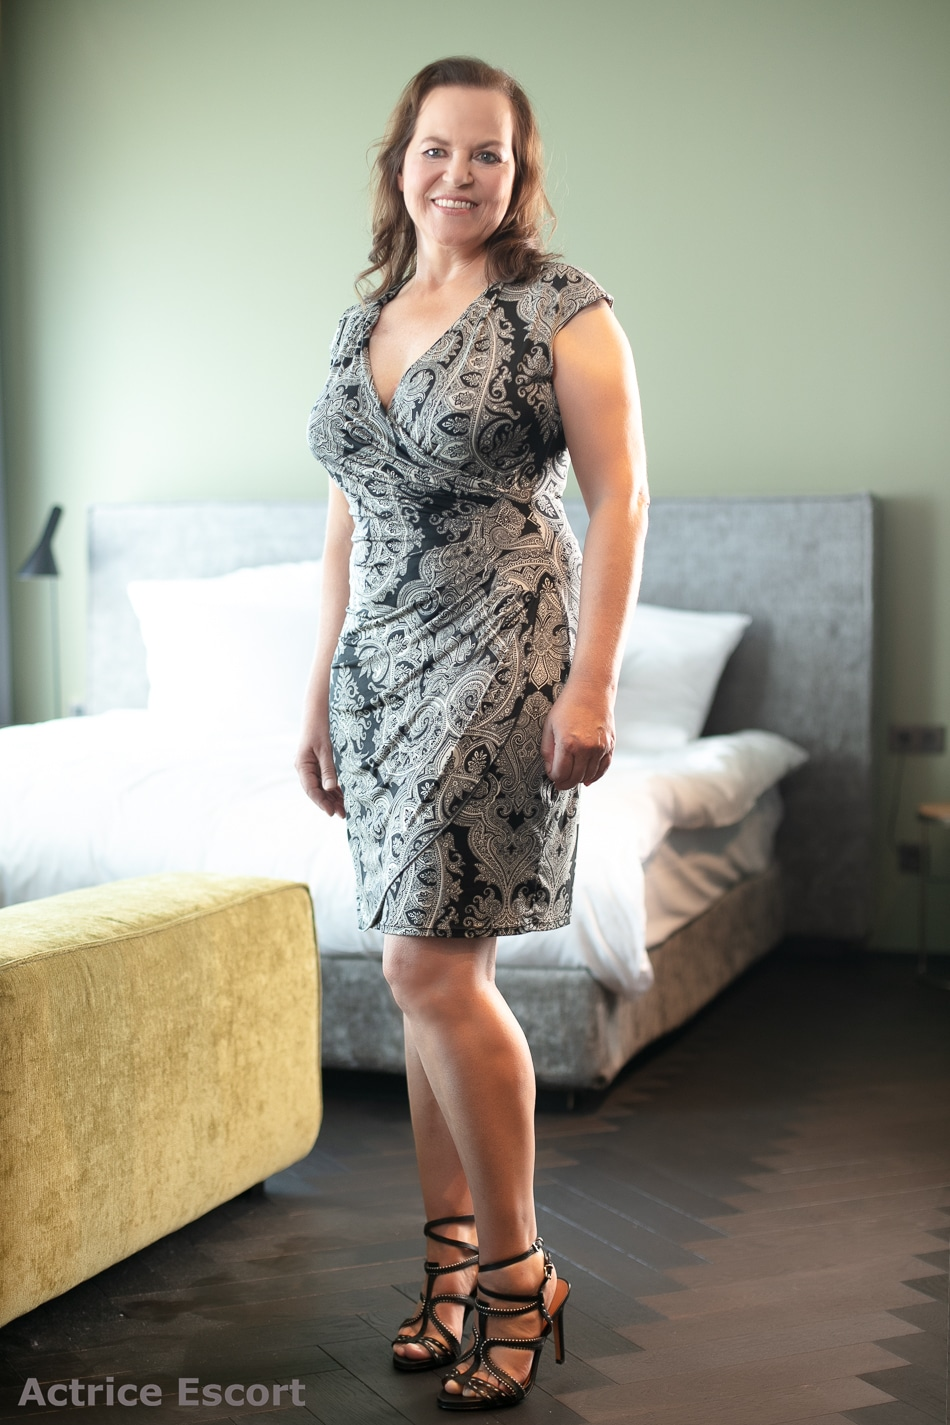 Bettina Escortservice Duesseldorf(6)